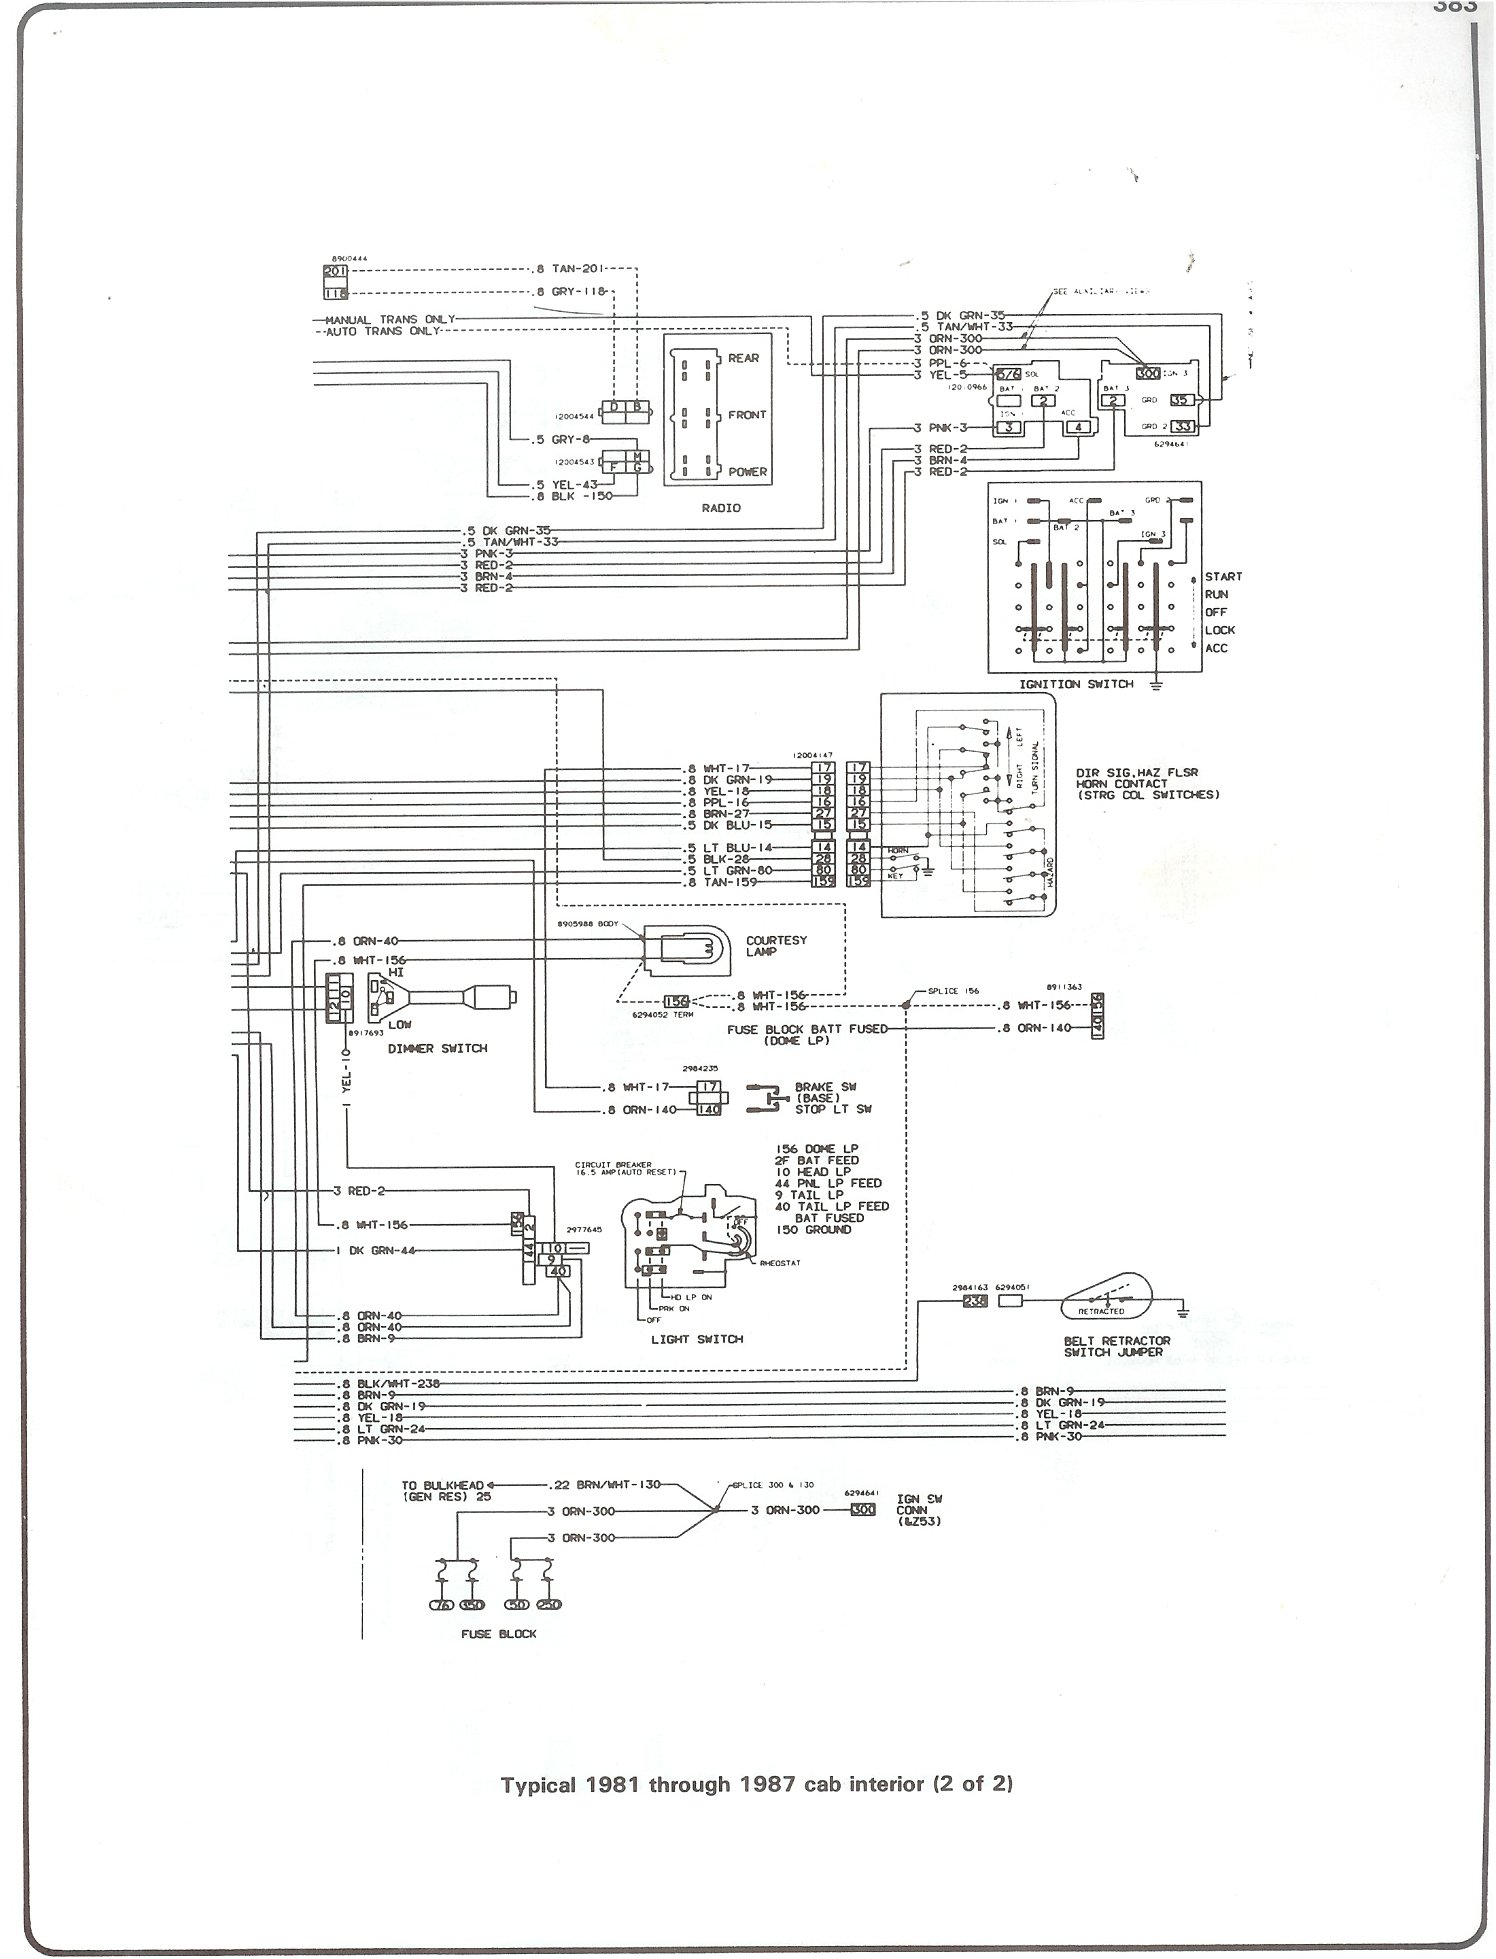 Complete 73 87 Wiring Diagrams 2000 Gmc Sierra Blower Motor Diagram 81 Cab Interior Page 2